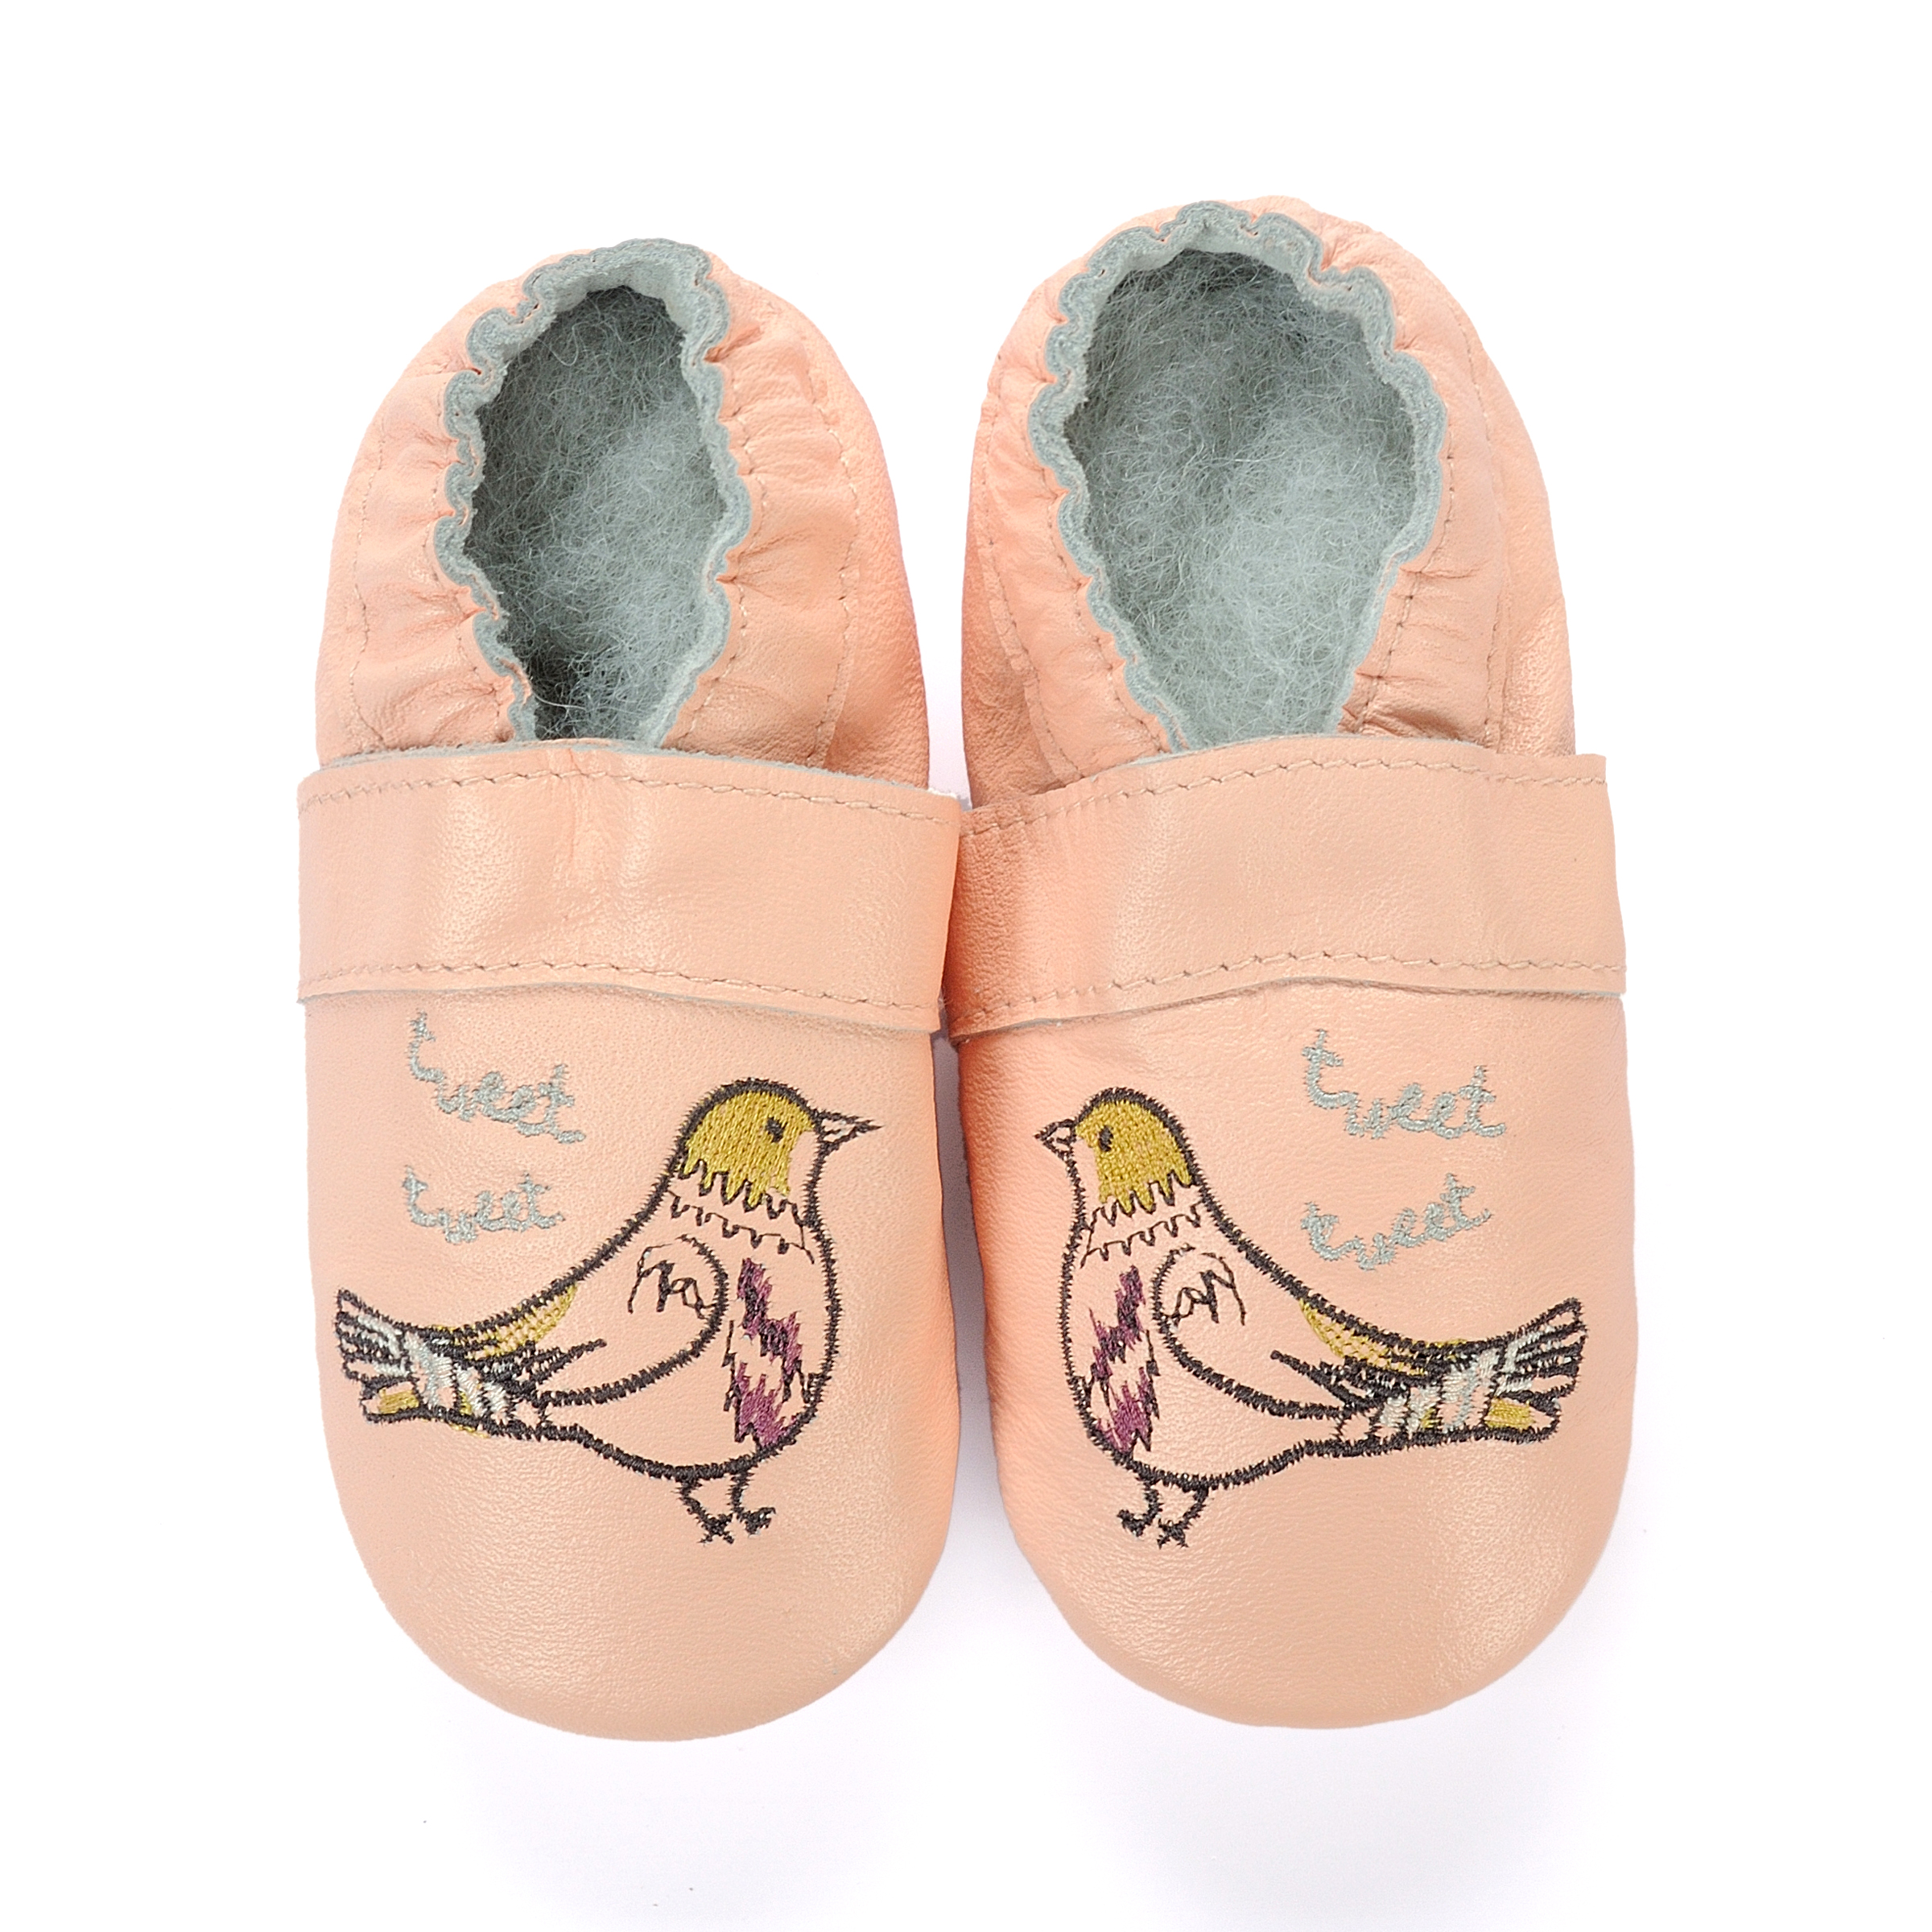 Baby Girl Boys Crawling Slippers Infant  Shoes Soft Leather Suede Sole First Walking Moccasins Skid-Proof Dinosaurs